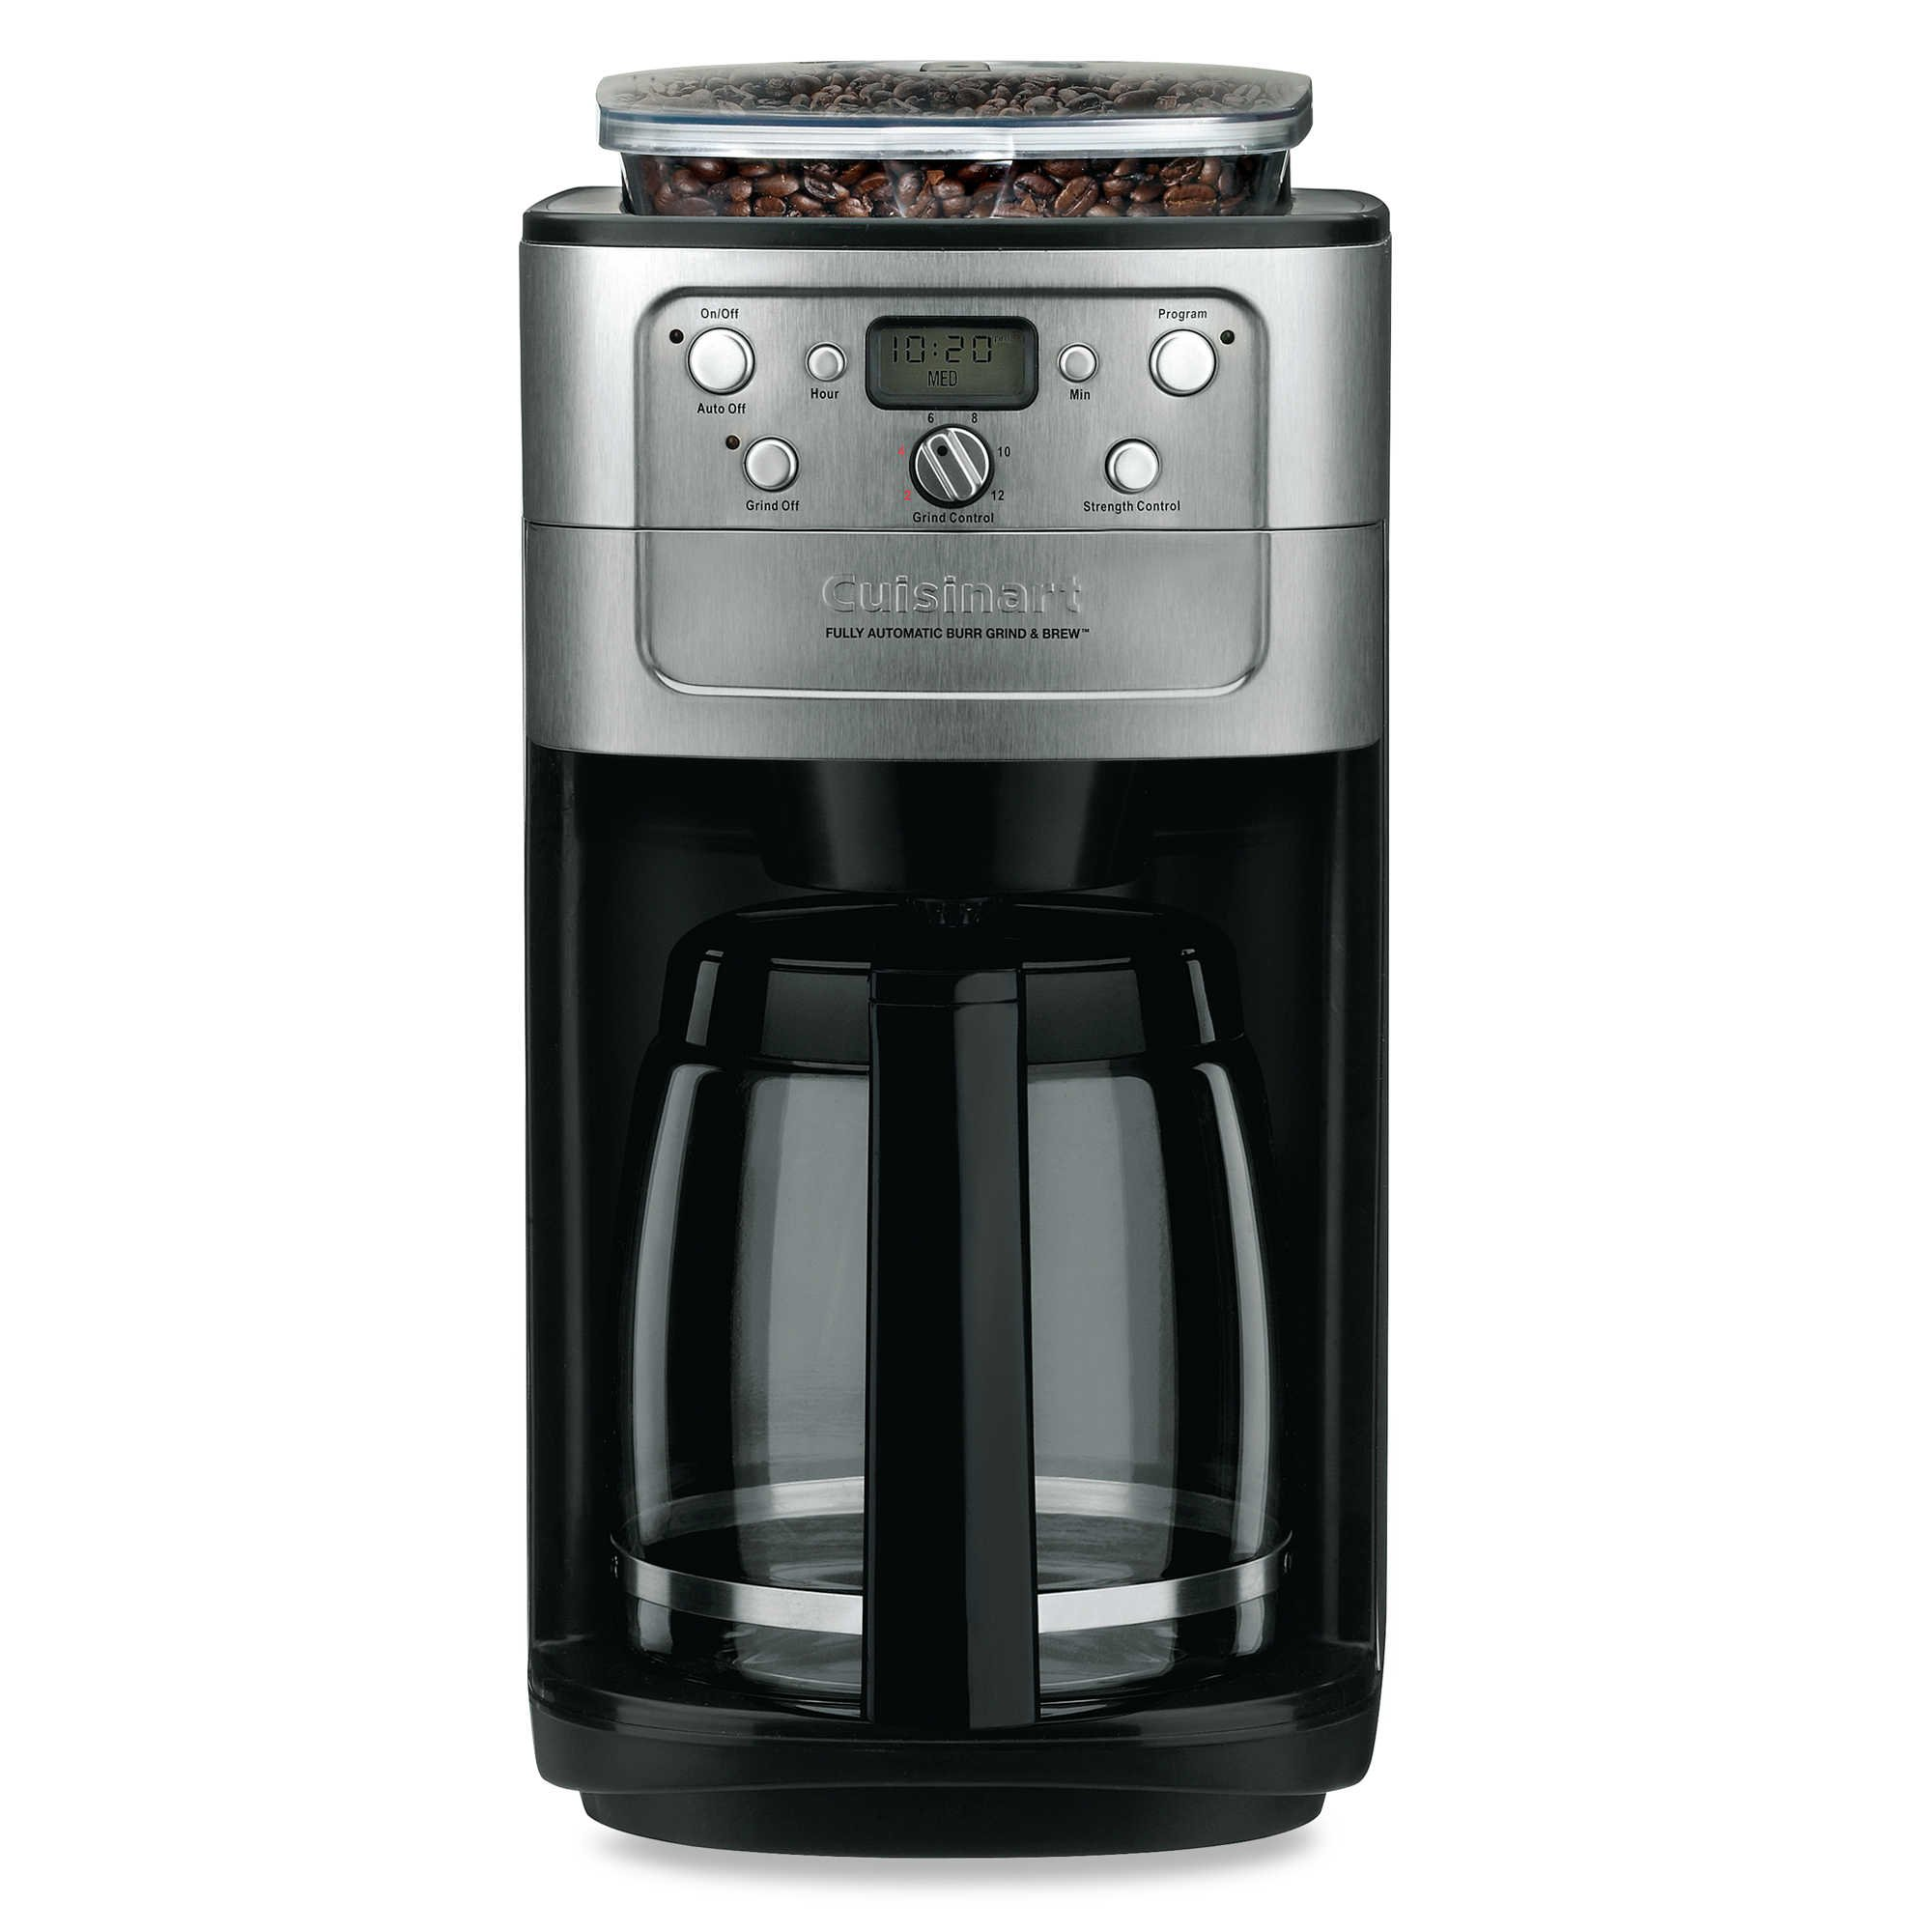 Cuisinart Automatic Coffeemaker Burr Grind And Brew 12 Cup Charcoal Water Filter 5 Oz.